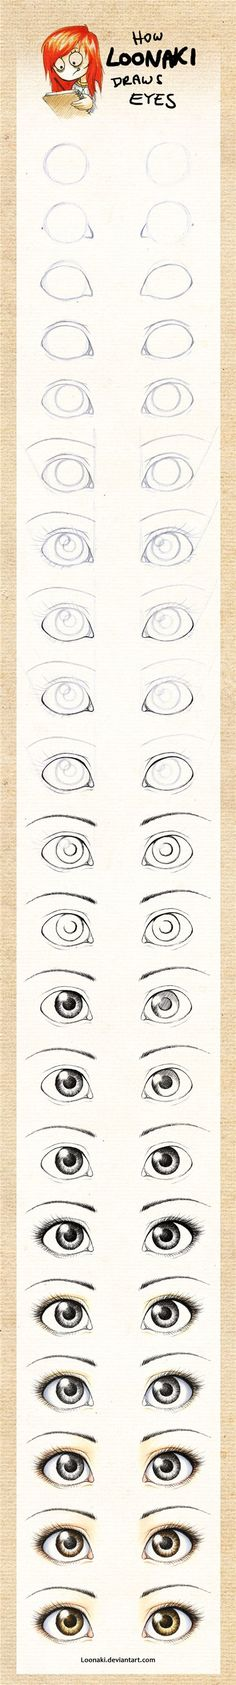 @rebekahmomo I found out how to draw eyes…